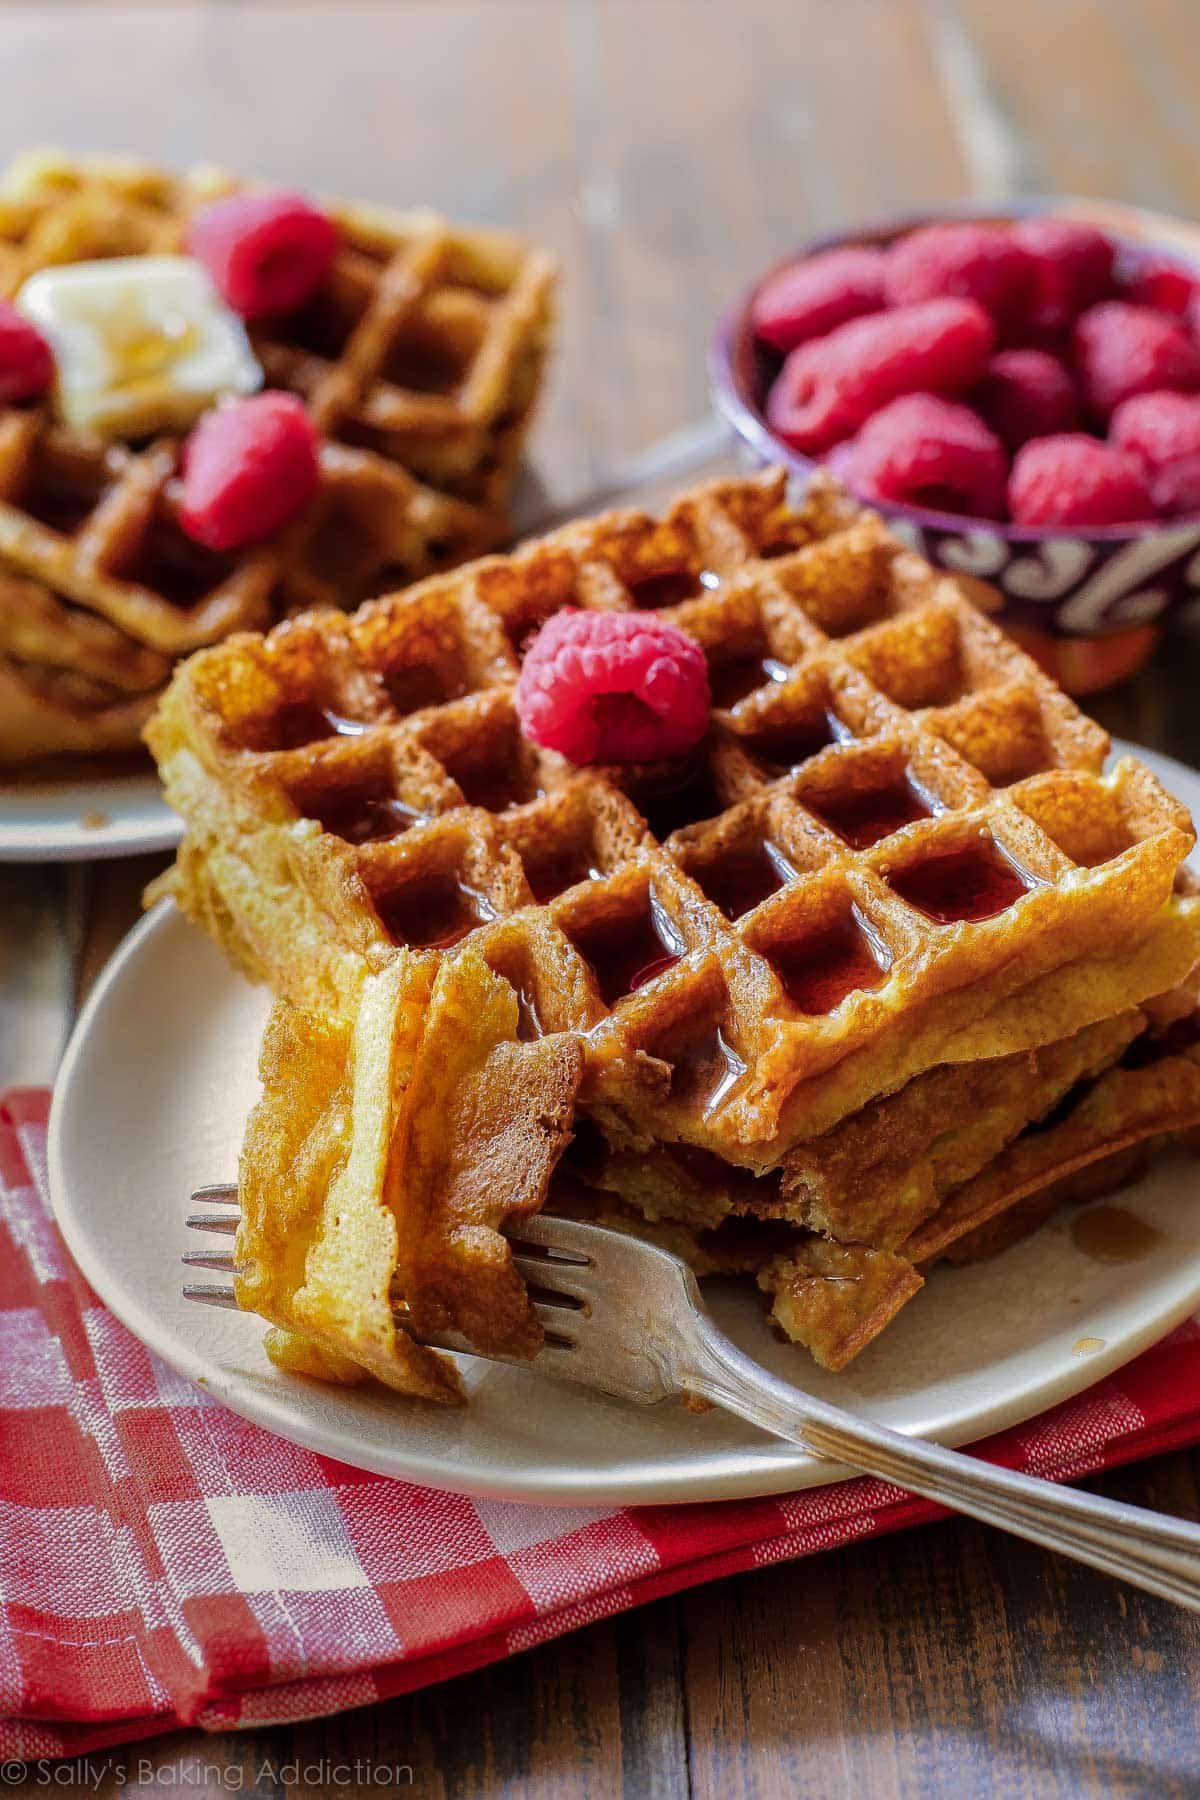 My Favorite Buttermilk Waffles - Sallys Baking Addiction